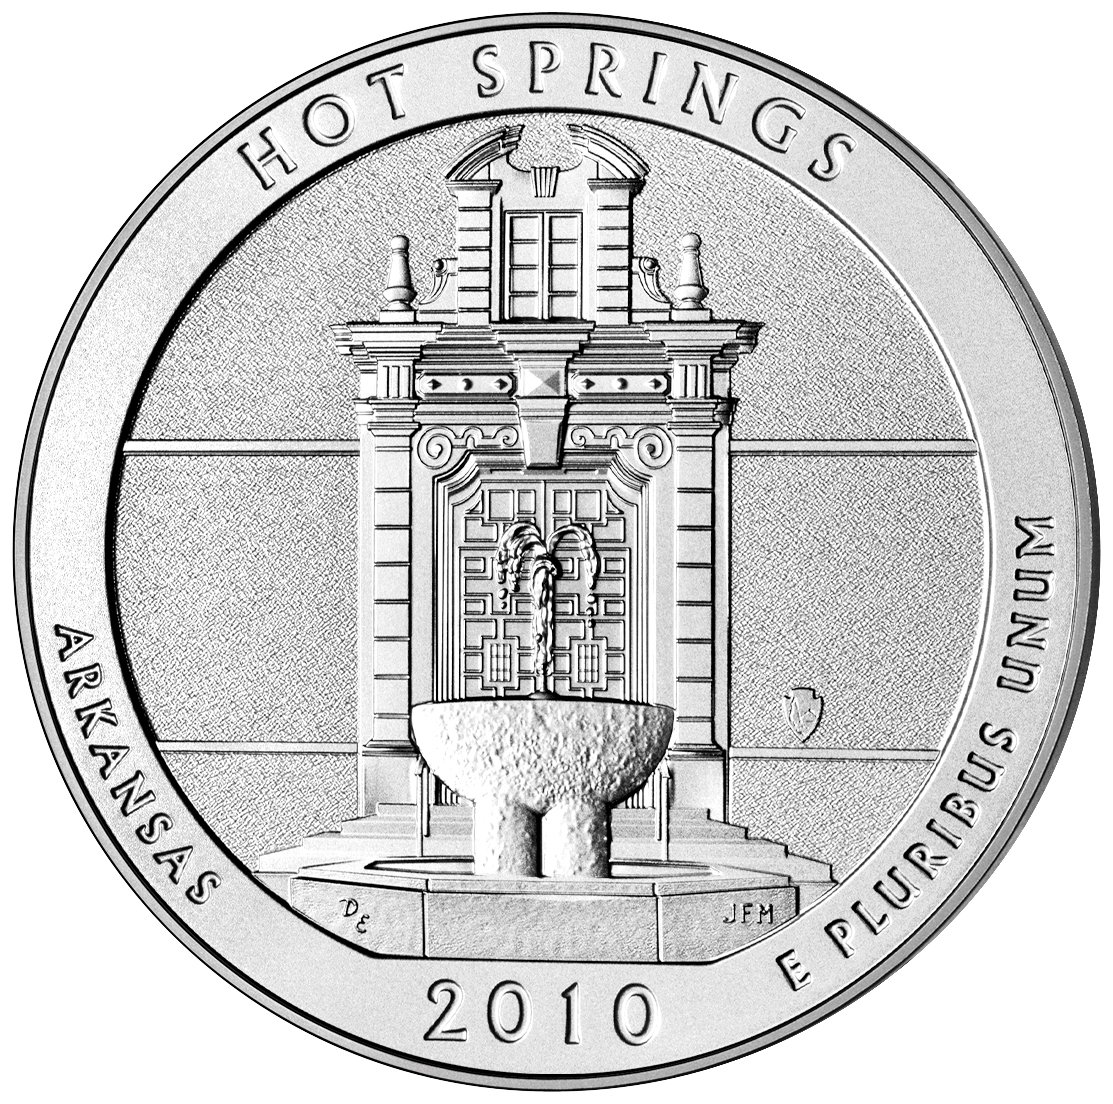 2010 America The Beautiful Quarters Five Ounce Silver Uncirculated Coin Hot Springs Arkansas Reverse